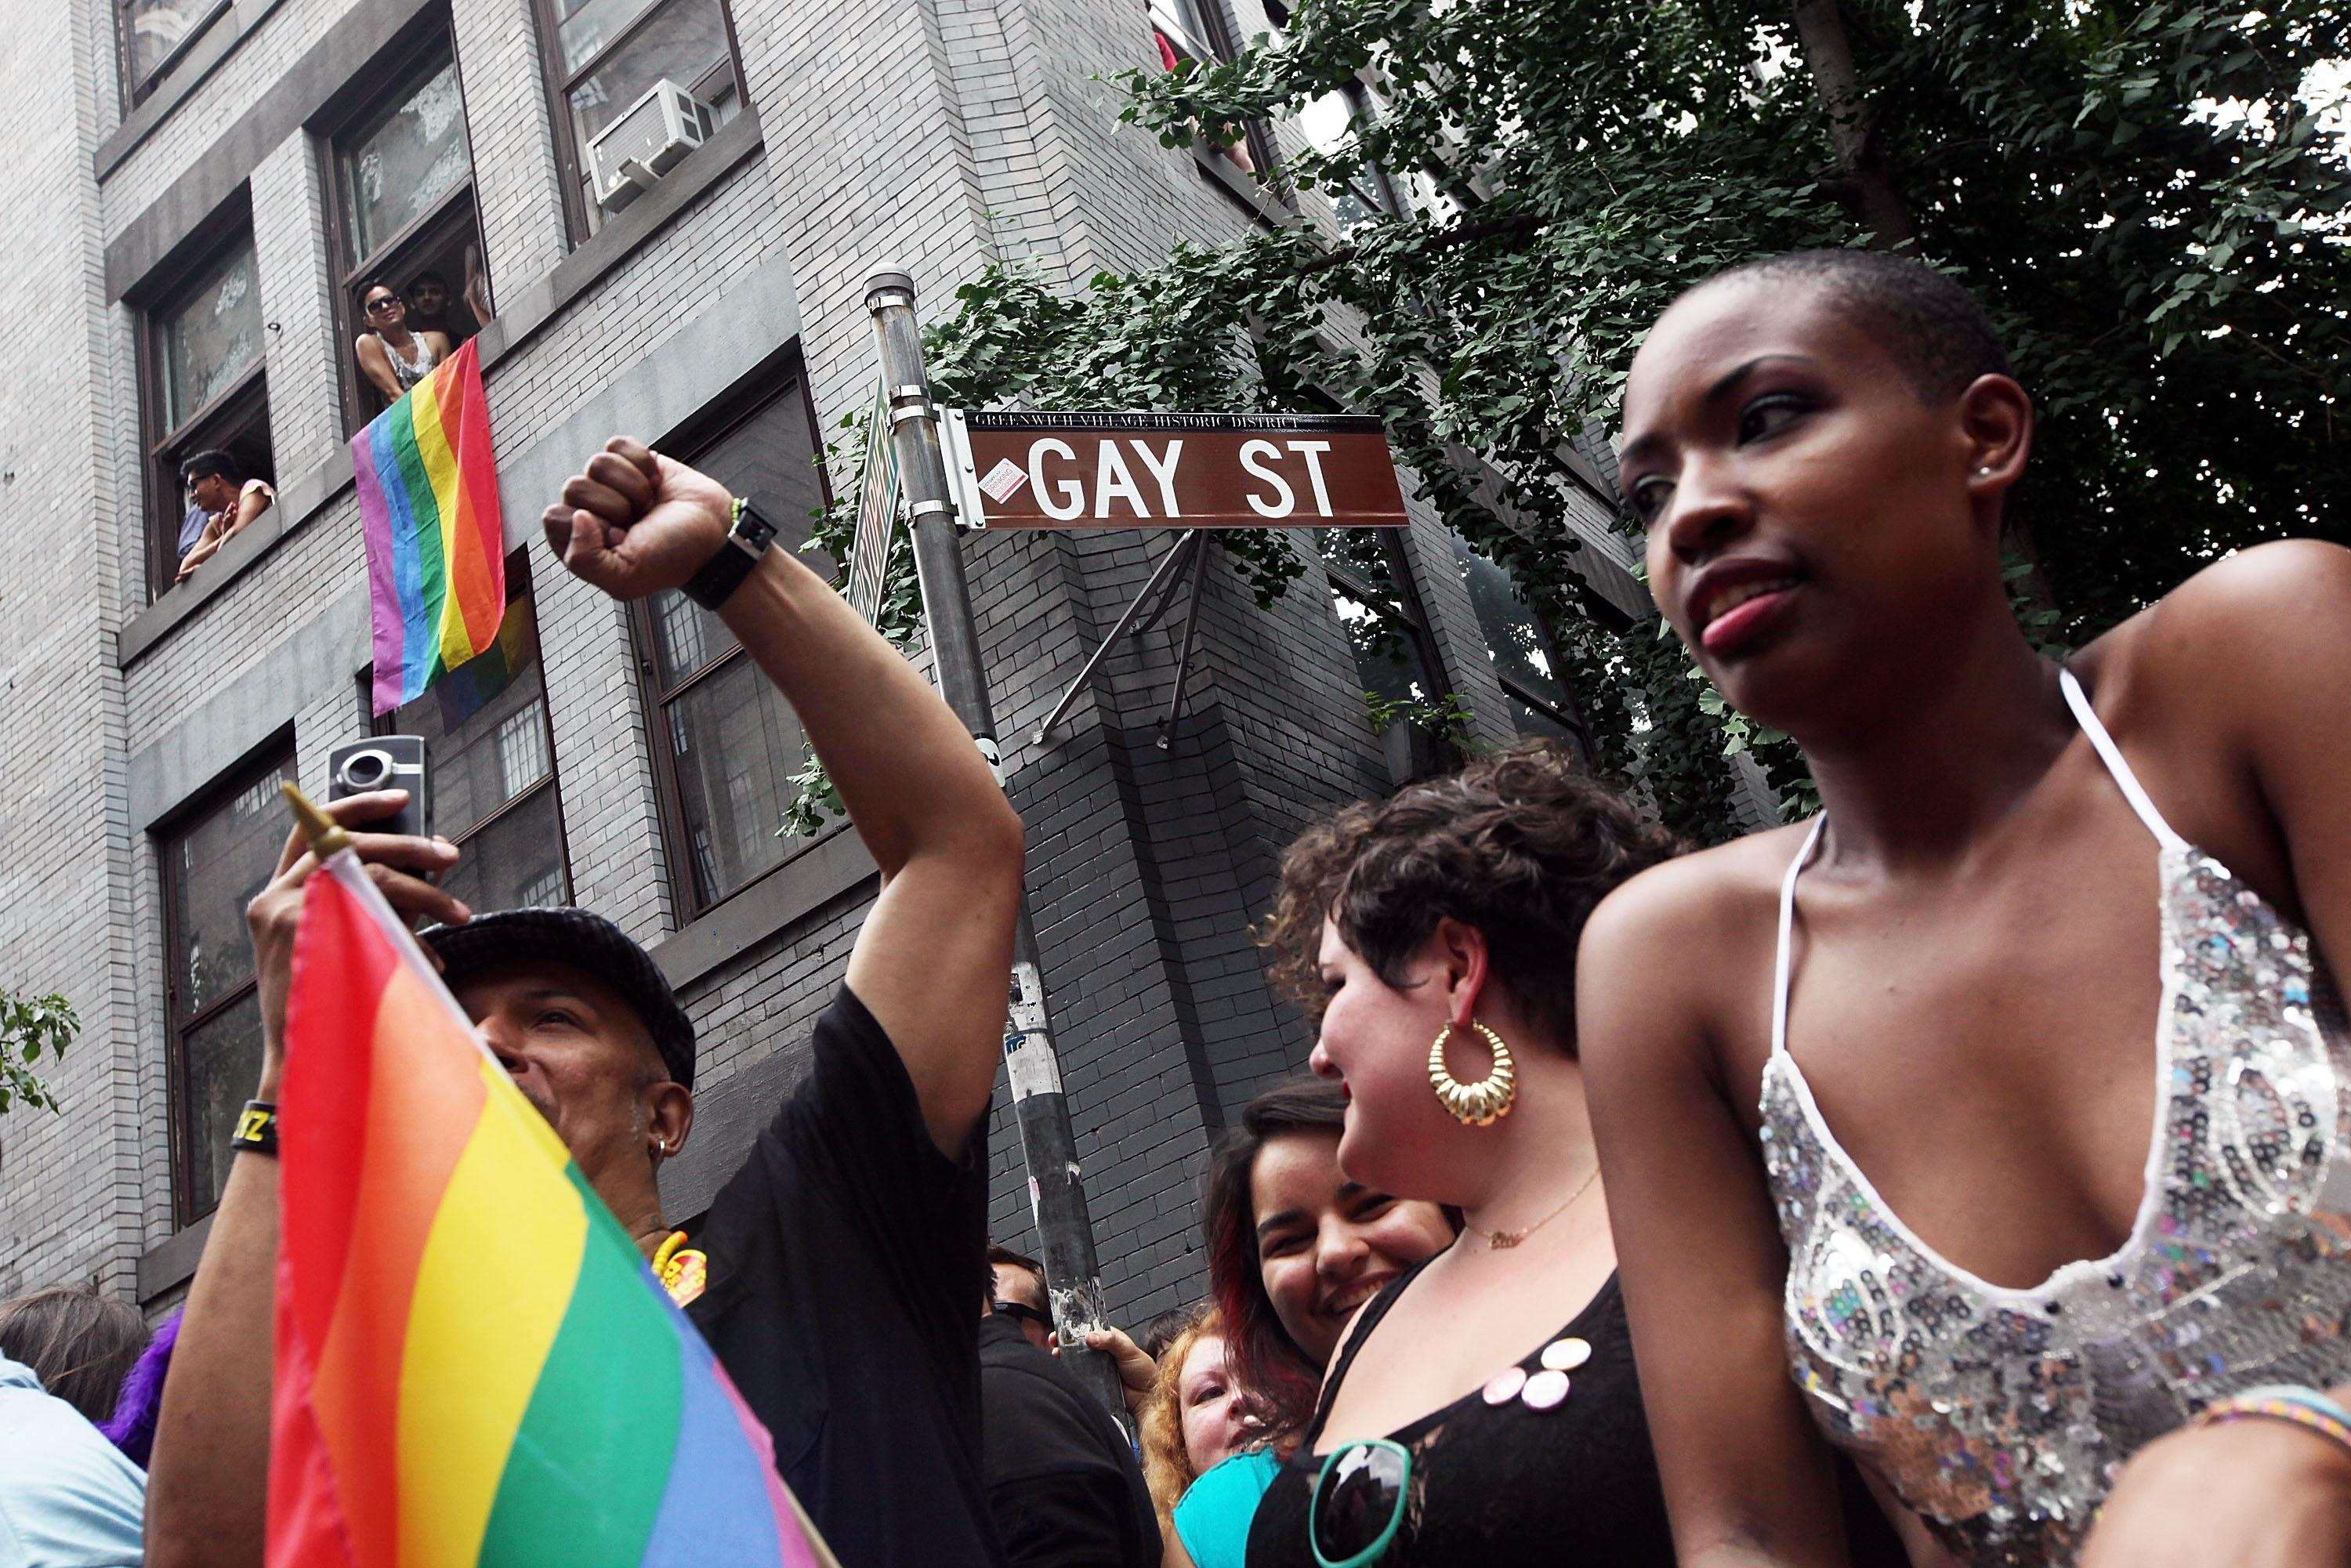 New York's Gay Pride Parade Celebrates Passage Of Same-Sex Marriage Law